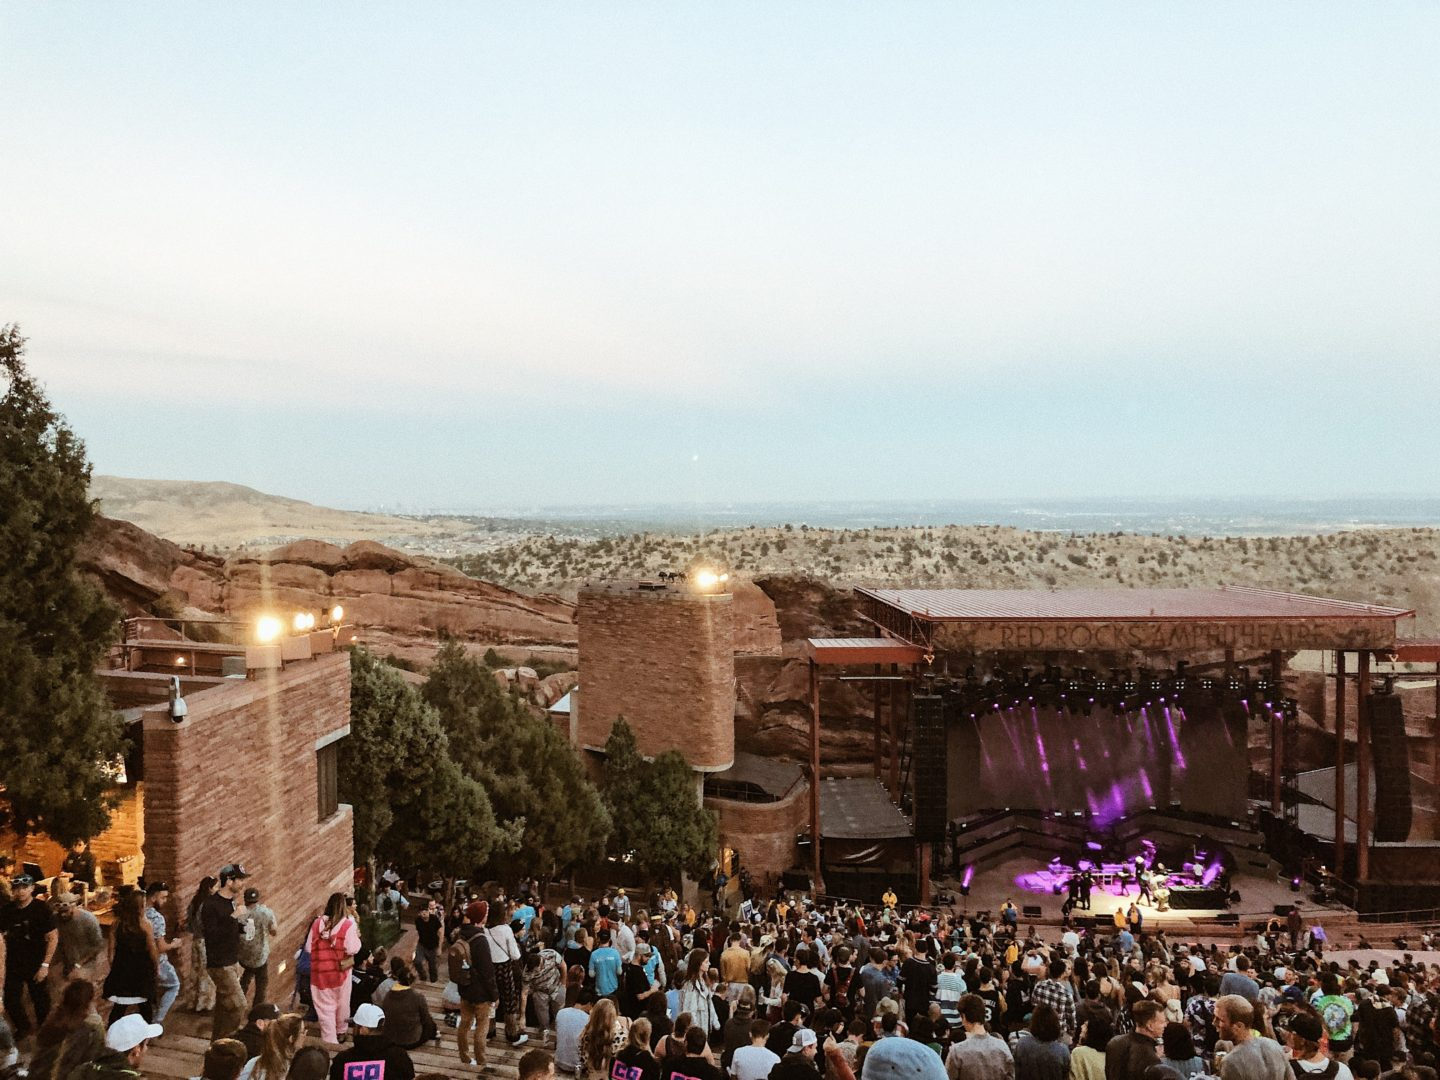 Just a short drive outside of Denver, the gorgeous red rock amphitheater!